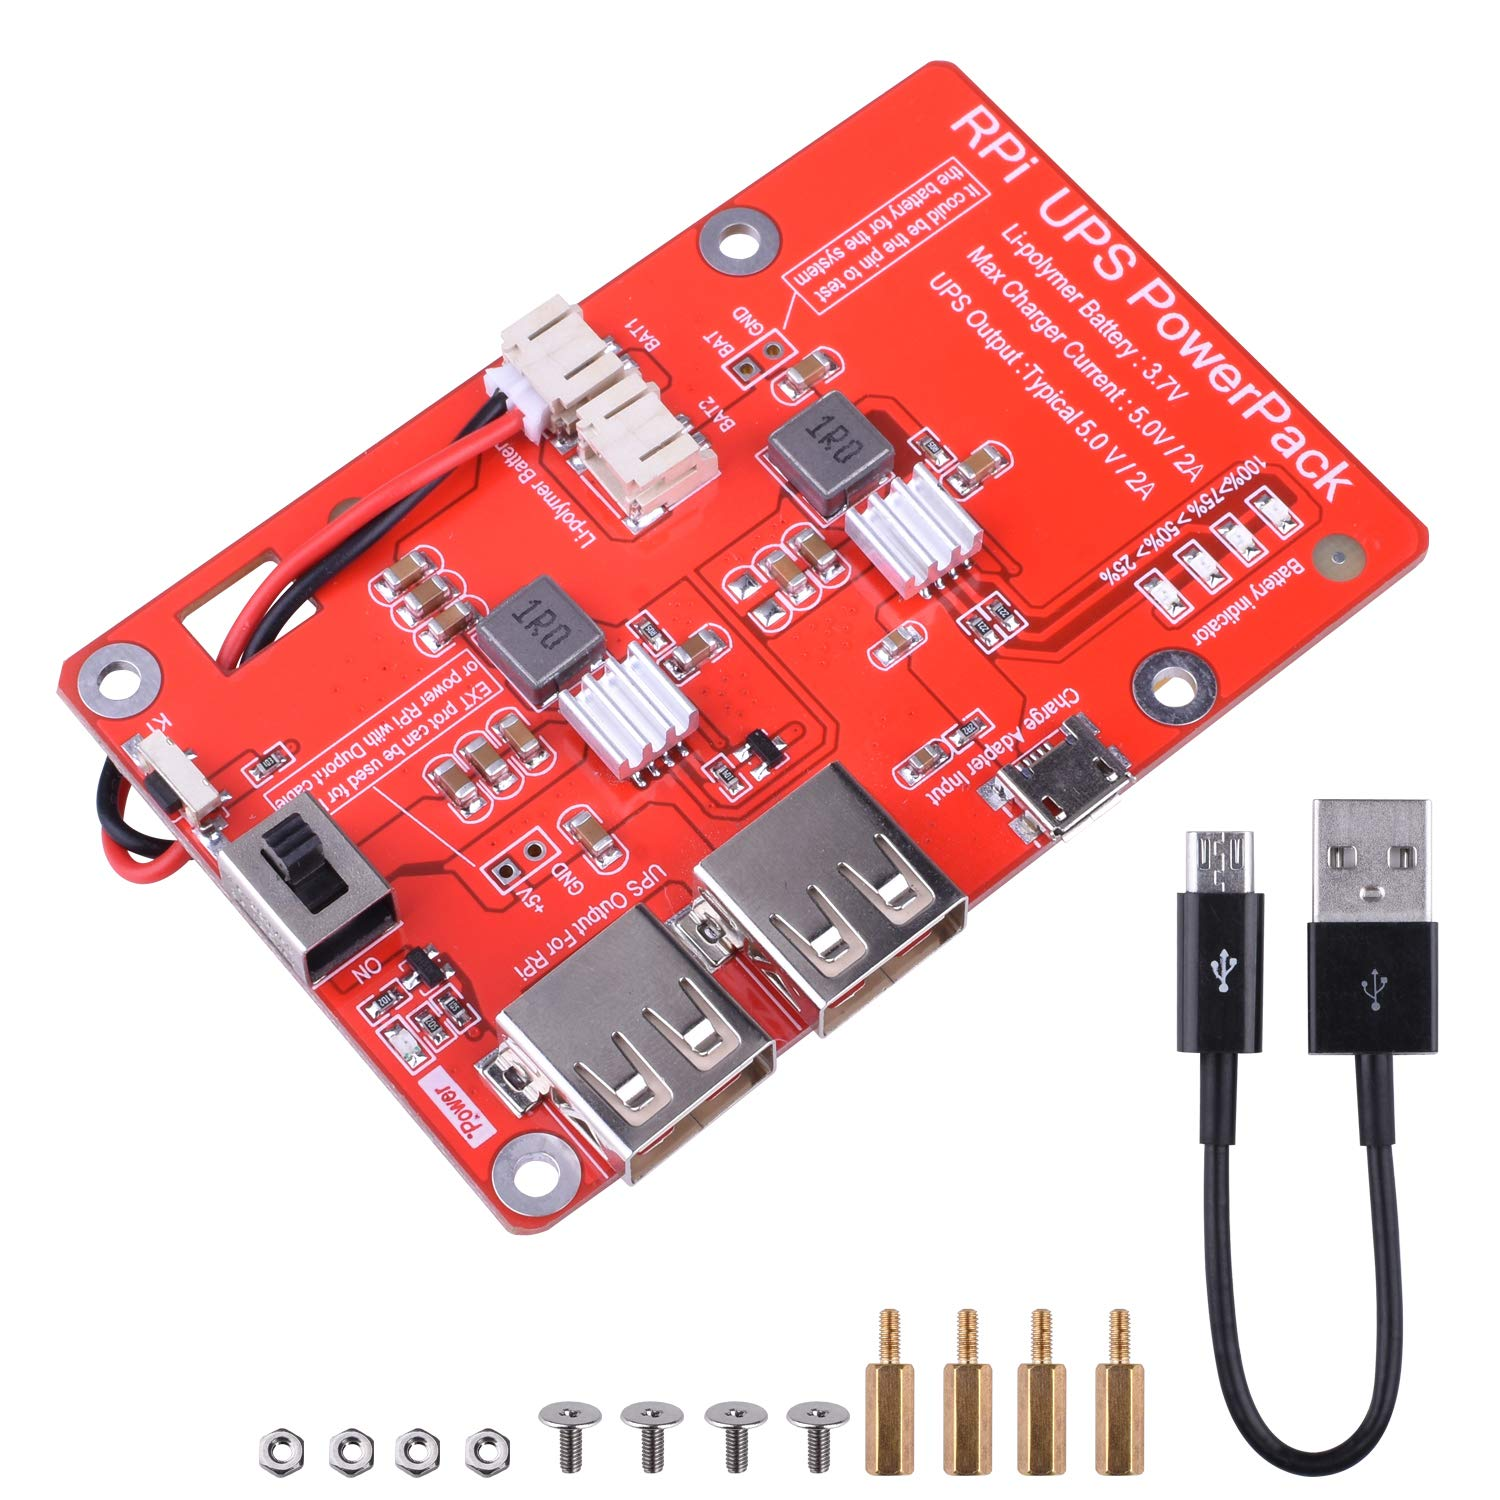 kuman UPS Battery Pack Expansion Board Power Supply for Raspberry Pi 3 Model B, B+,Pi 2 Model B & Pi 1 Model B+ A+ A (New Version Raspberry pi Battery Pack)